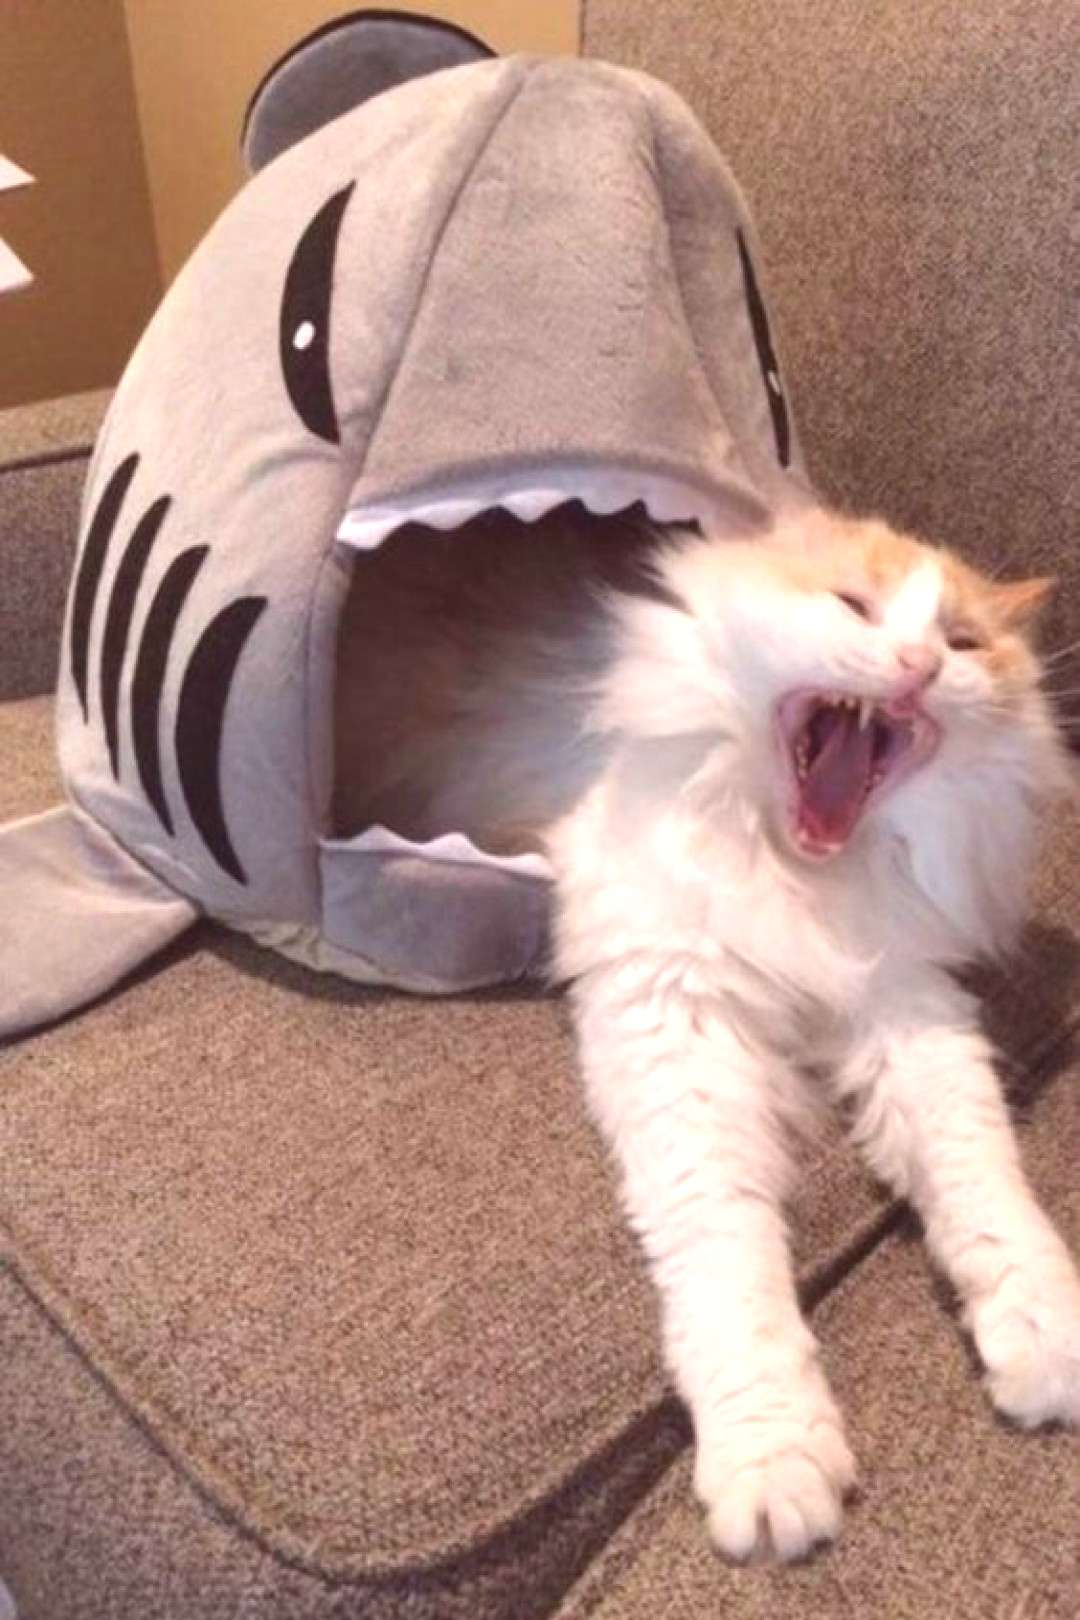 Give your cat this shark cat house and snap your own funny cat memes! Makes a great last minute Chr